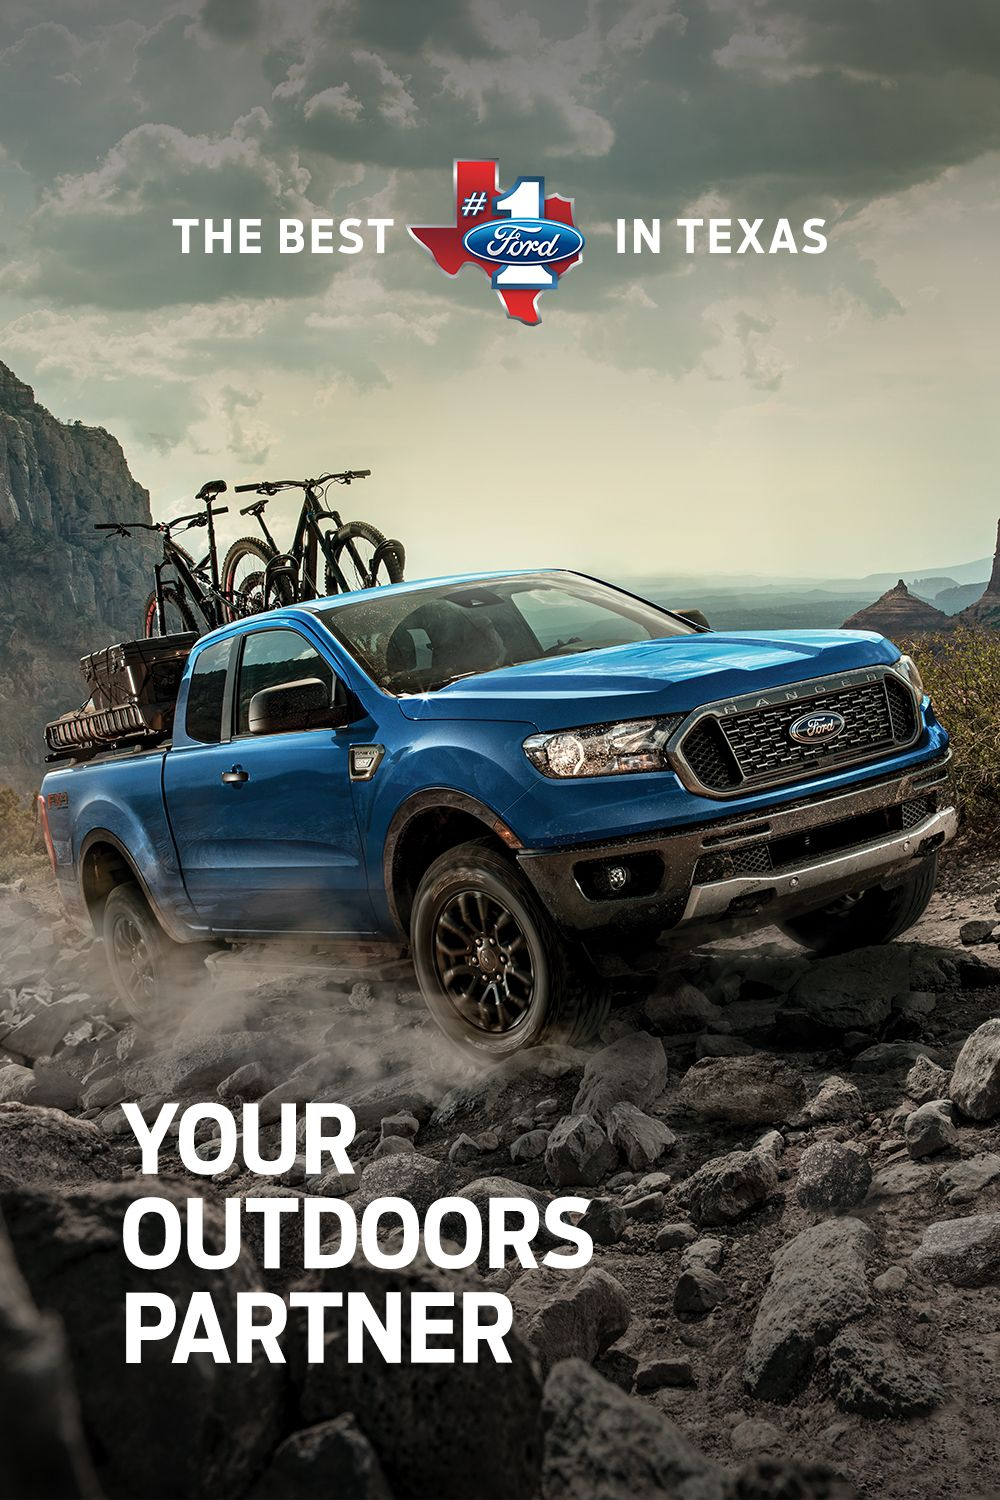 Celebrate Fall Texas Style Spending Your Days Outdoors With Your Ford Ranger The Ranger Comes With Terrain Managem Ford Ranger Ford Motor Company Ford Motor